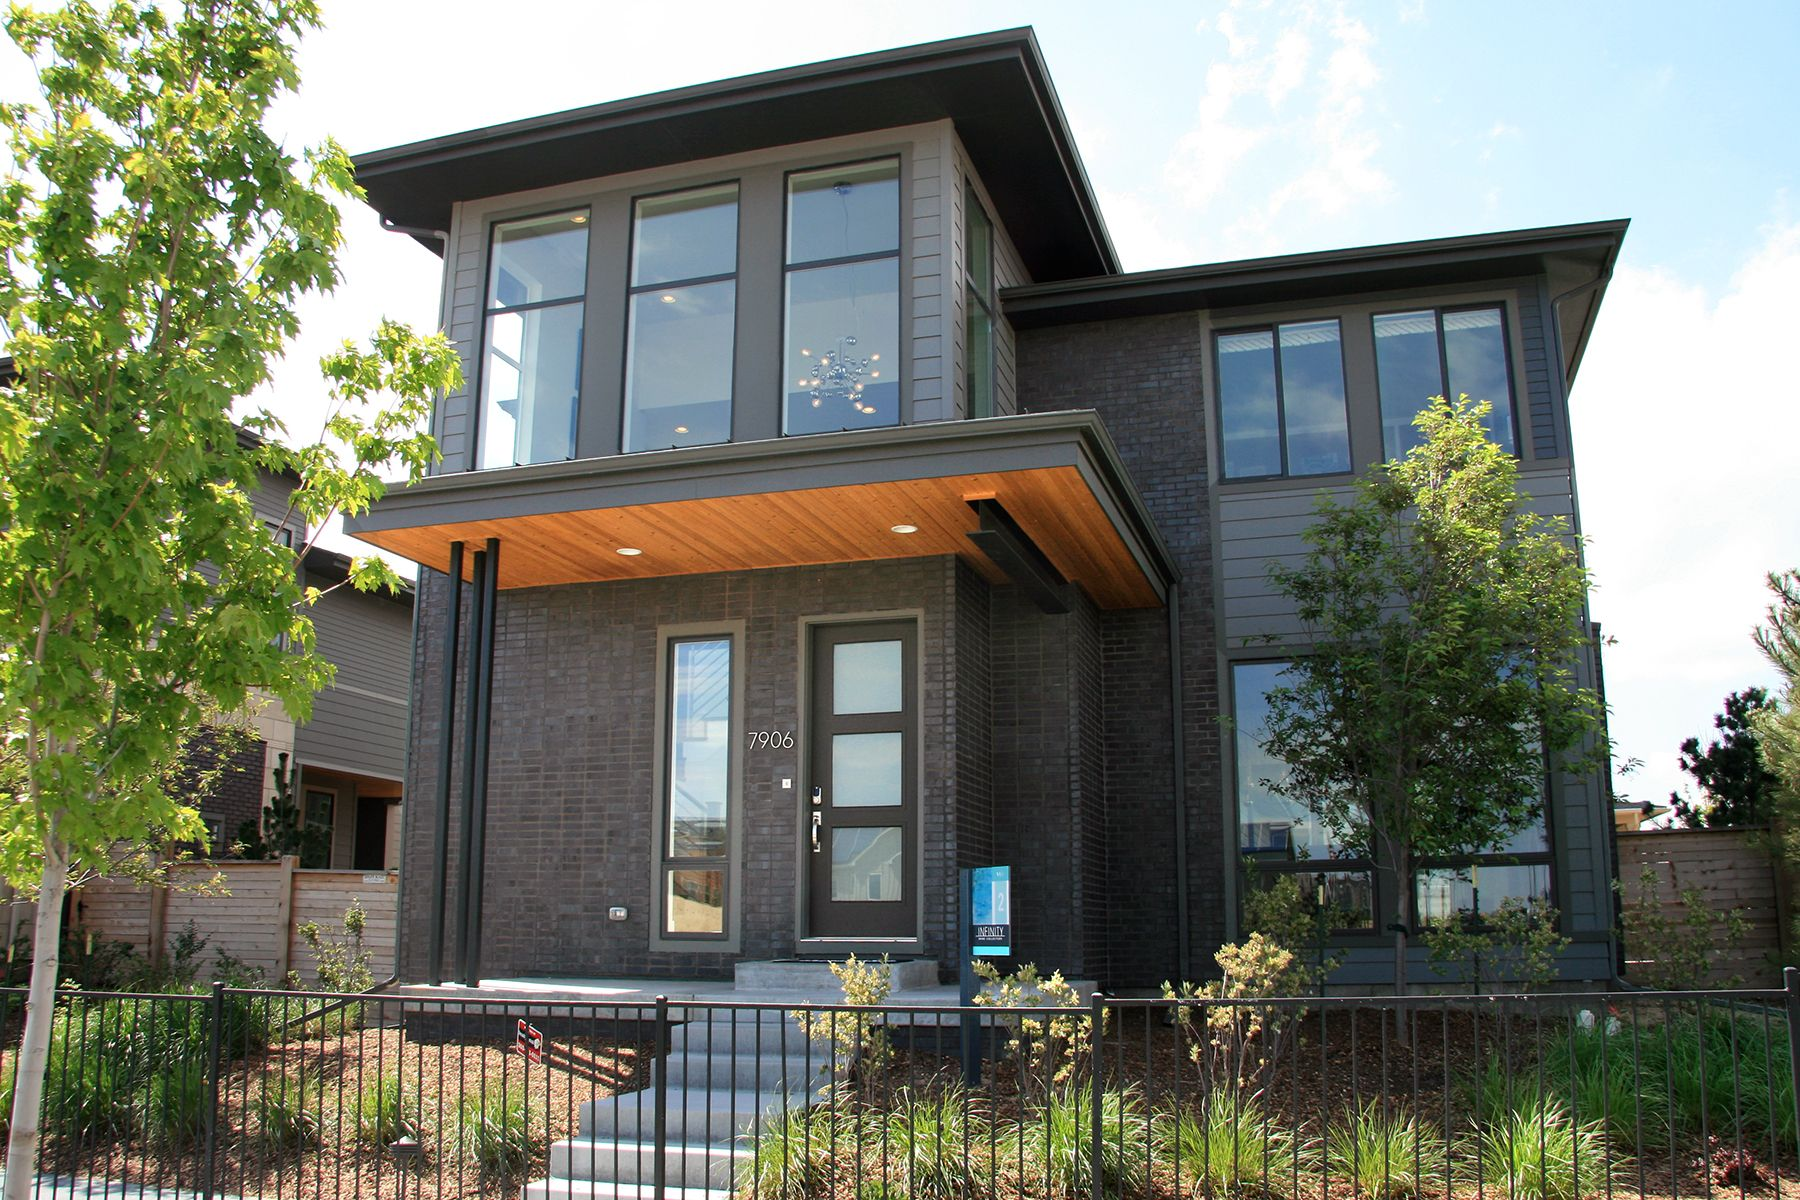 Summit brick company black diamond brick on modern homes Black brick homes